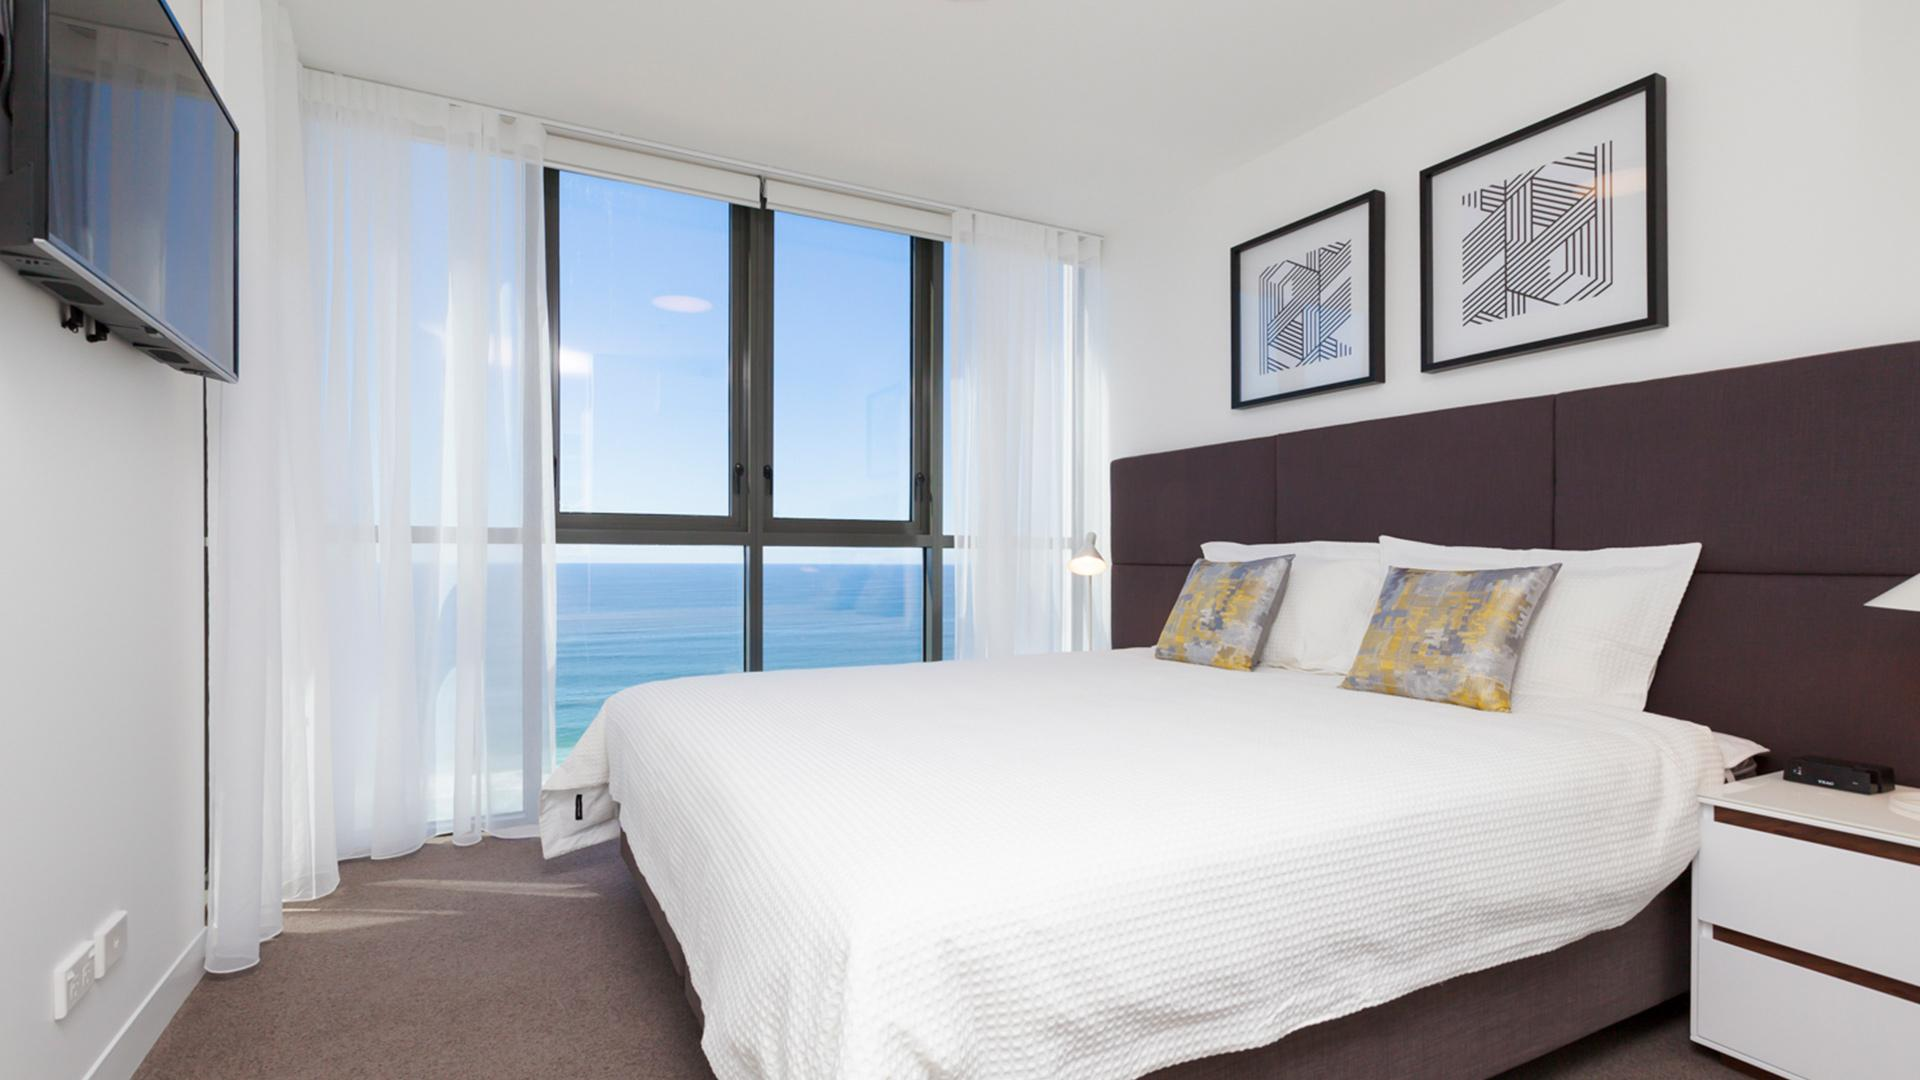 One-Bedroom Ocean View Apartment - 3 Nights image 1 at Rhapsody Resort by City of Gold Coast, Queensland, Australia